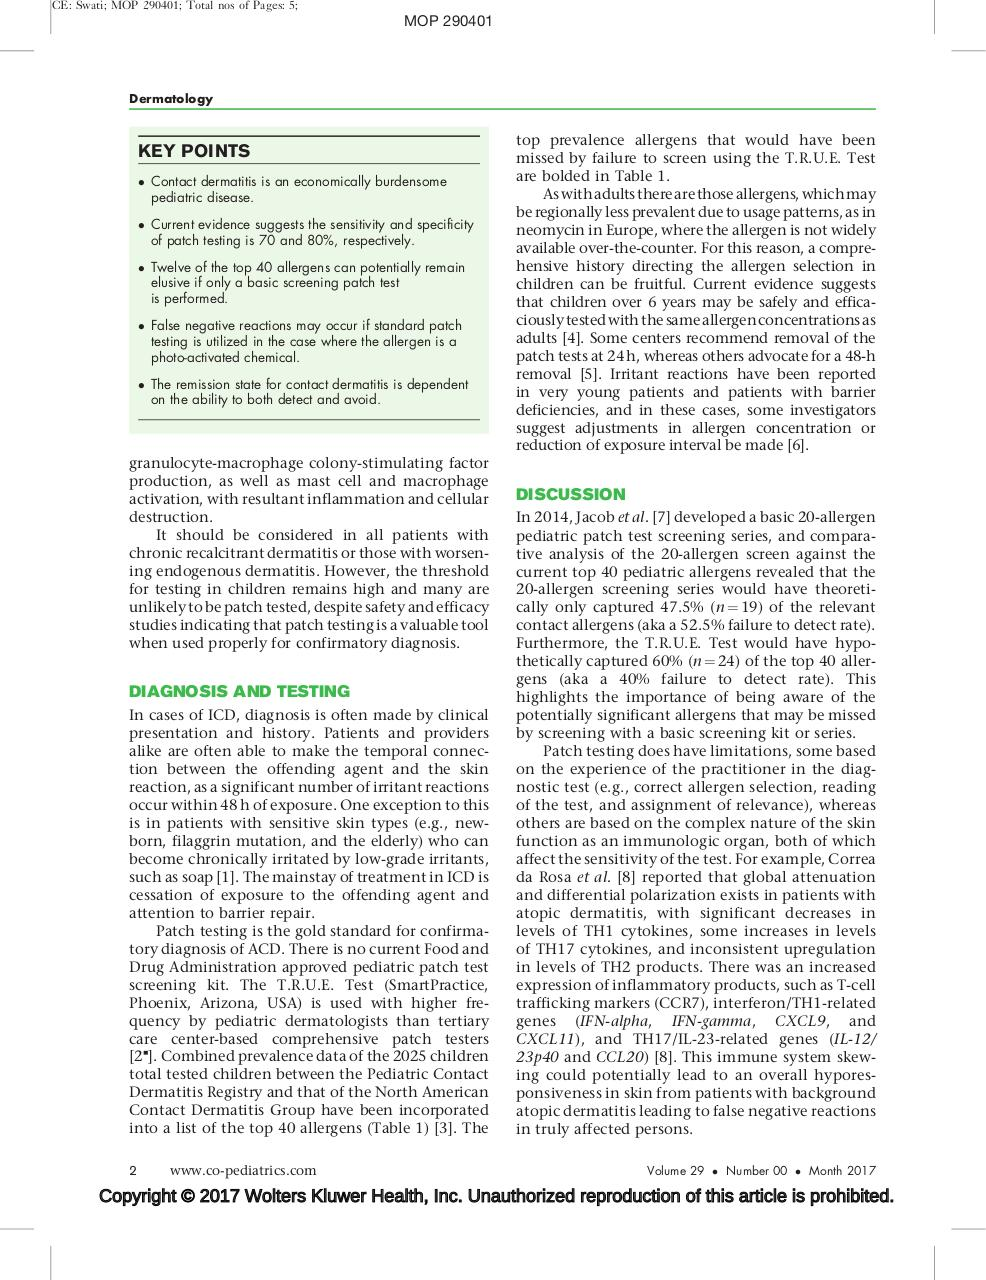 Allergic contact dermatitis.pdf - page 2/5